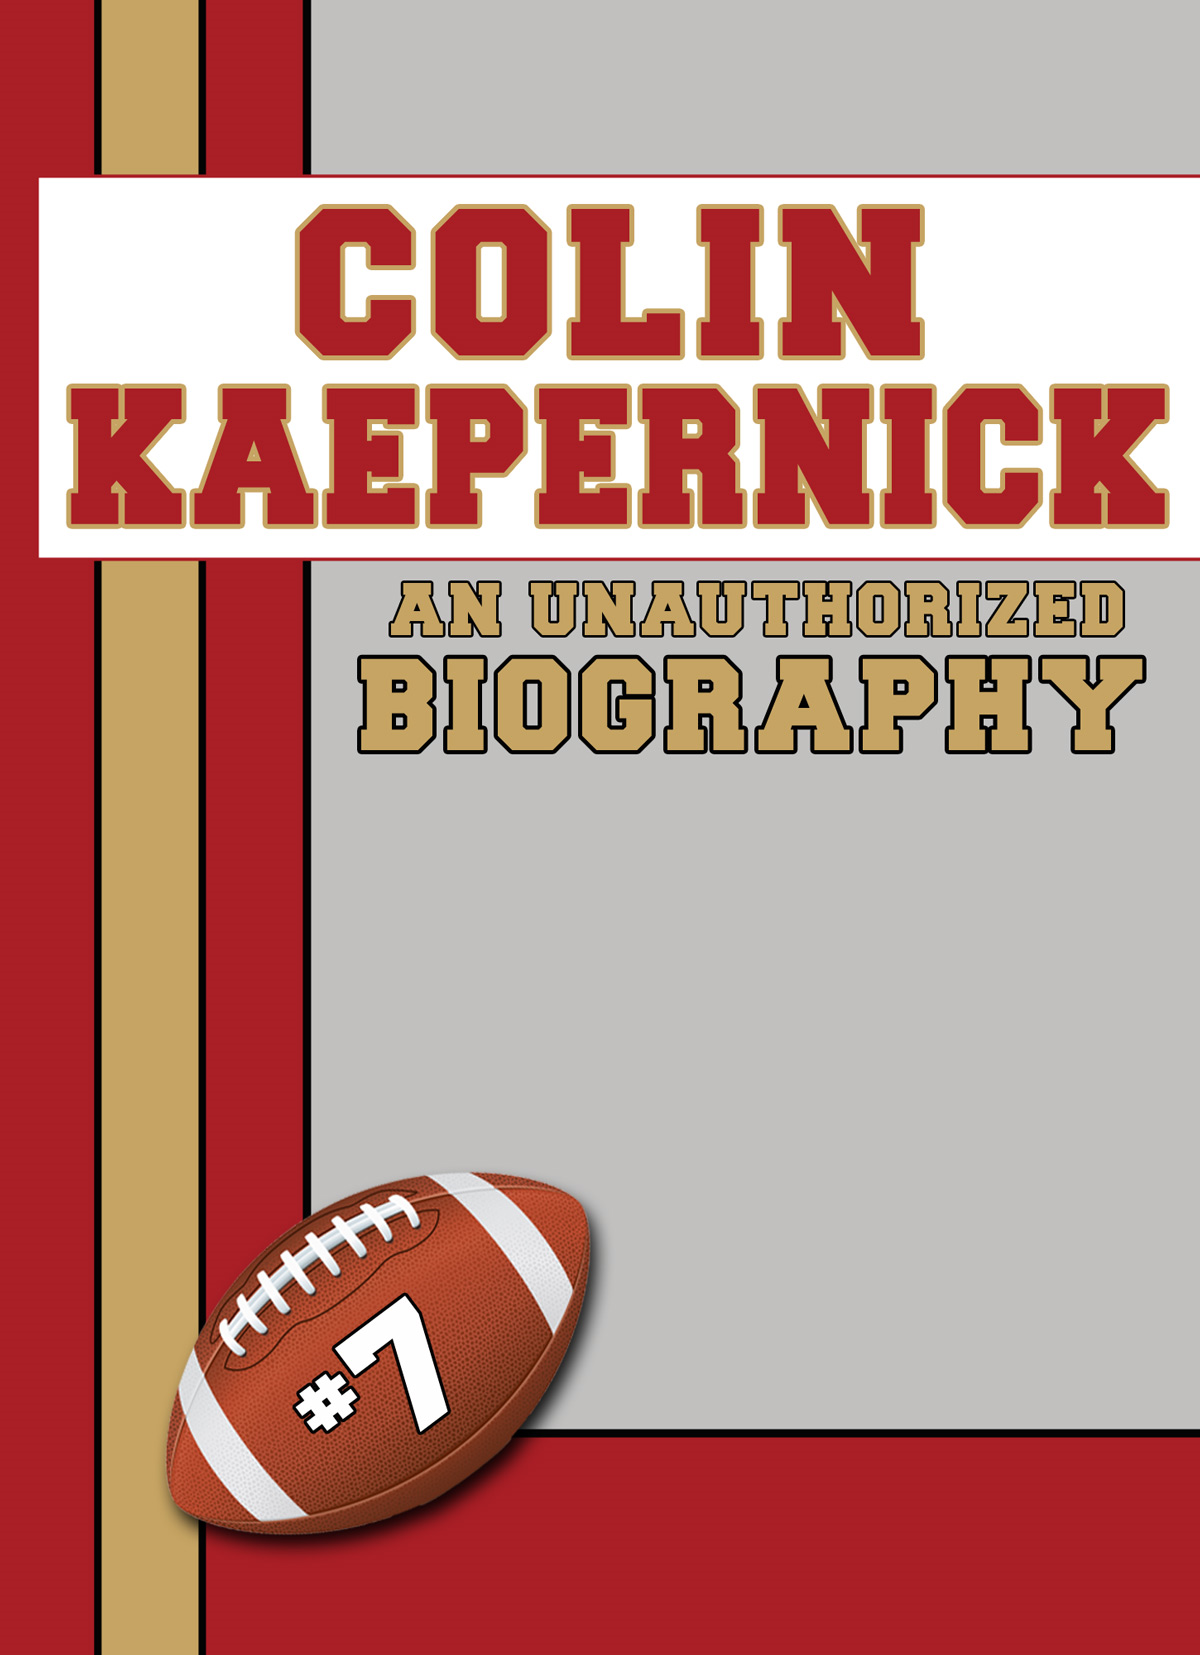 Colin Kaepernick By: Belmont and Belcourt Biographies